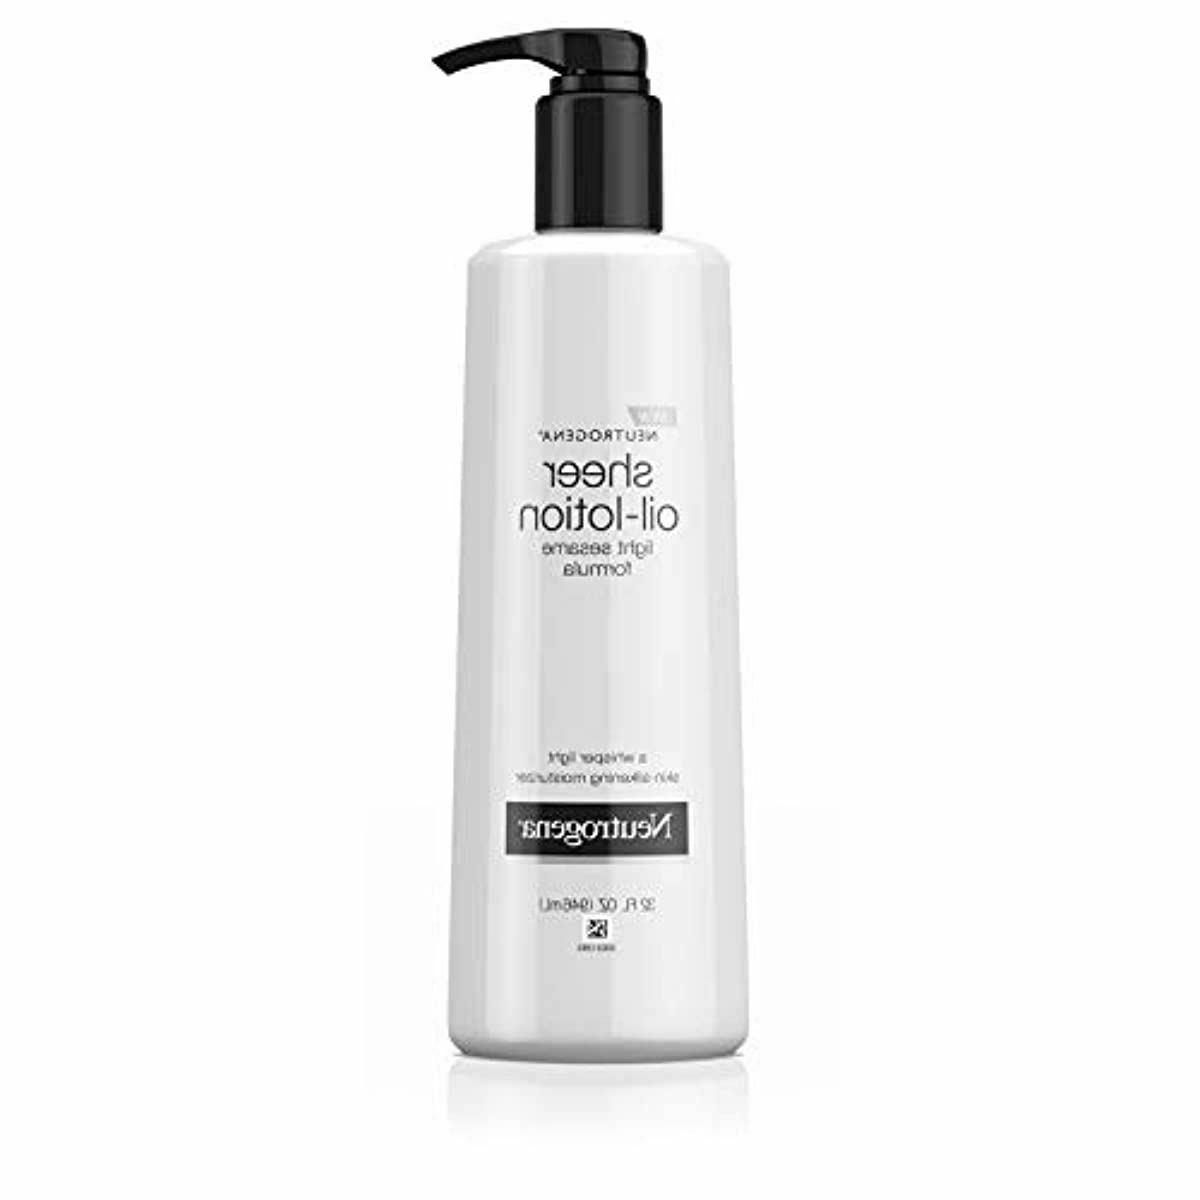 Neutrogena Body Lotion, Light Sesame Formula, 32 Ounce